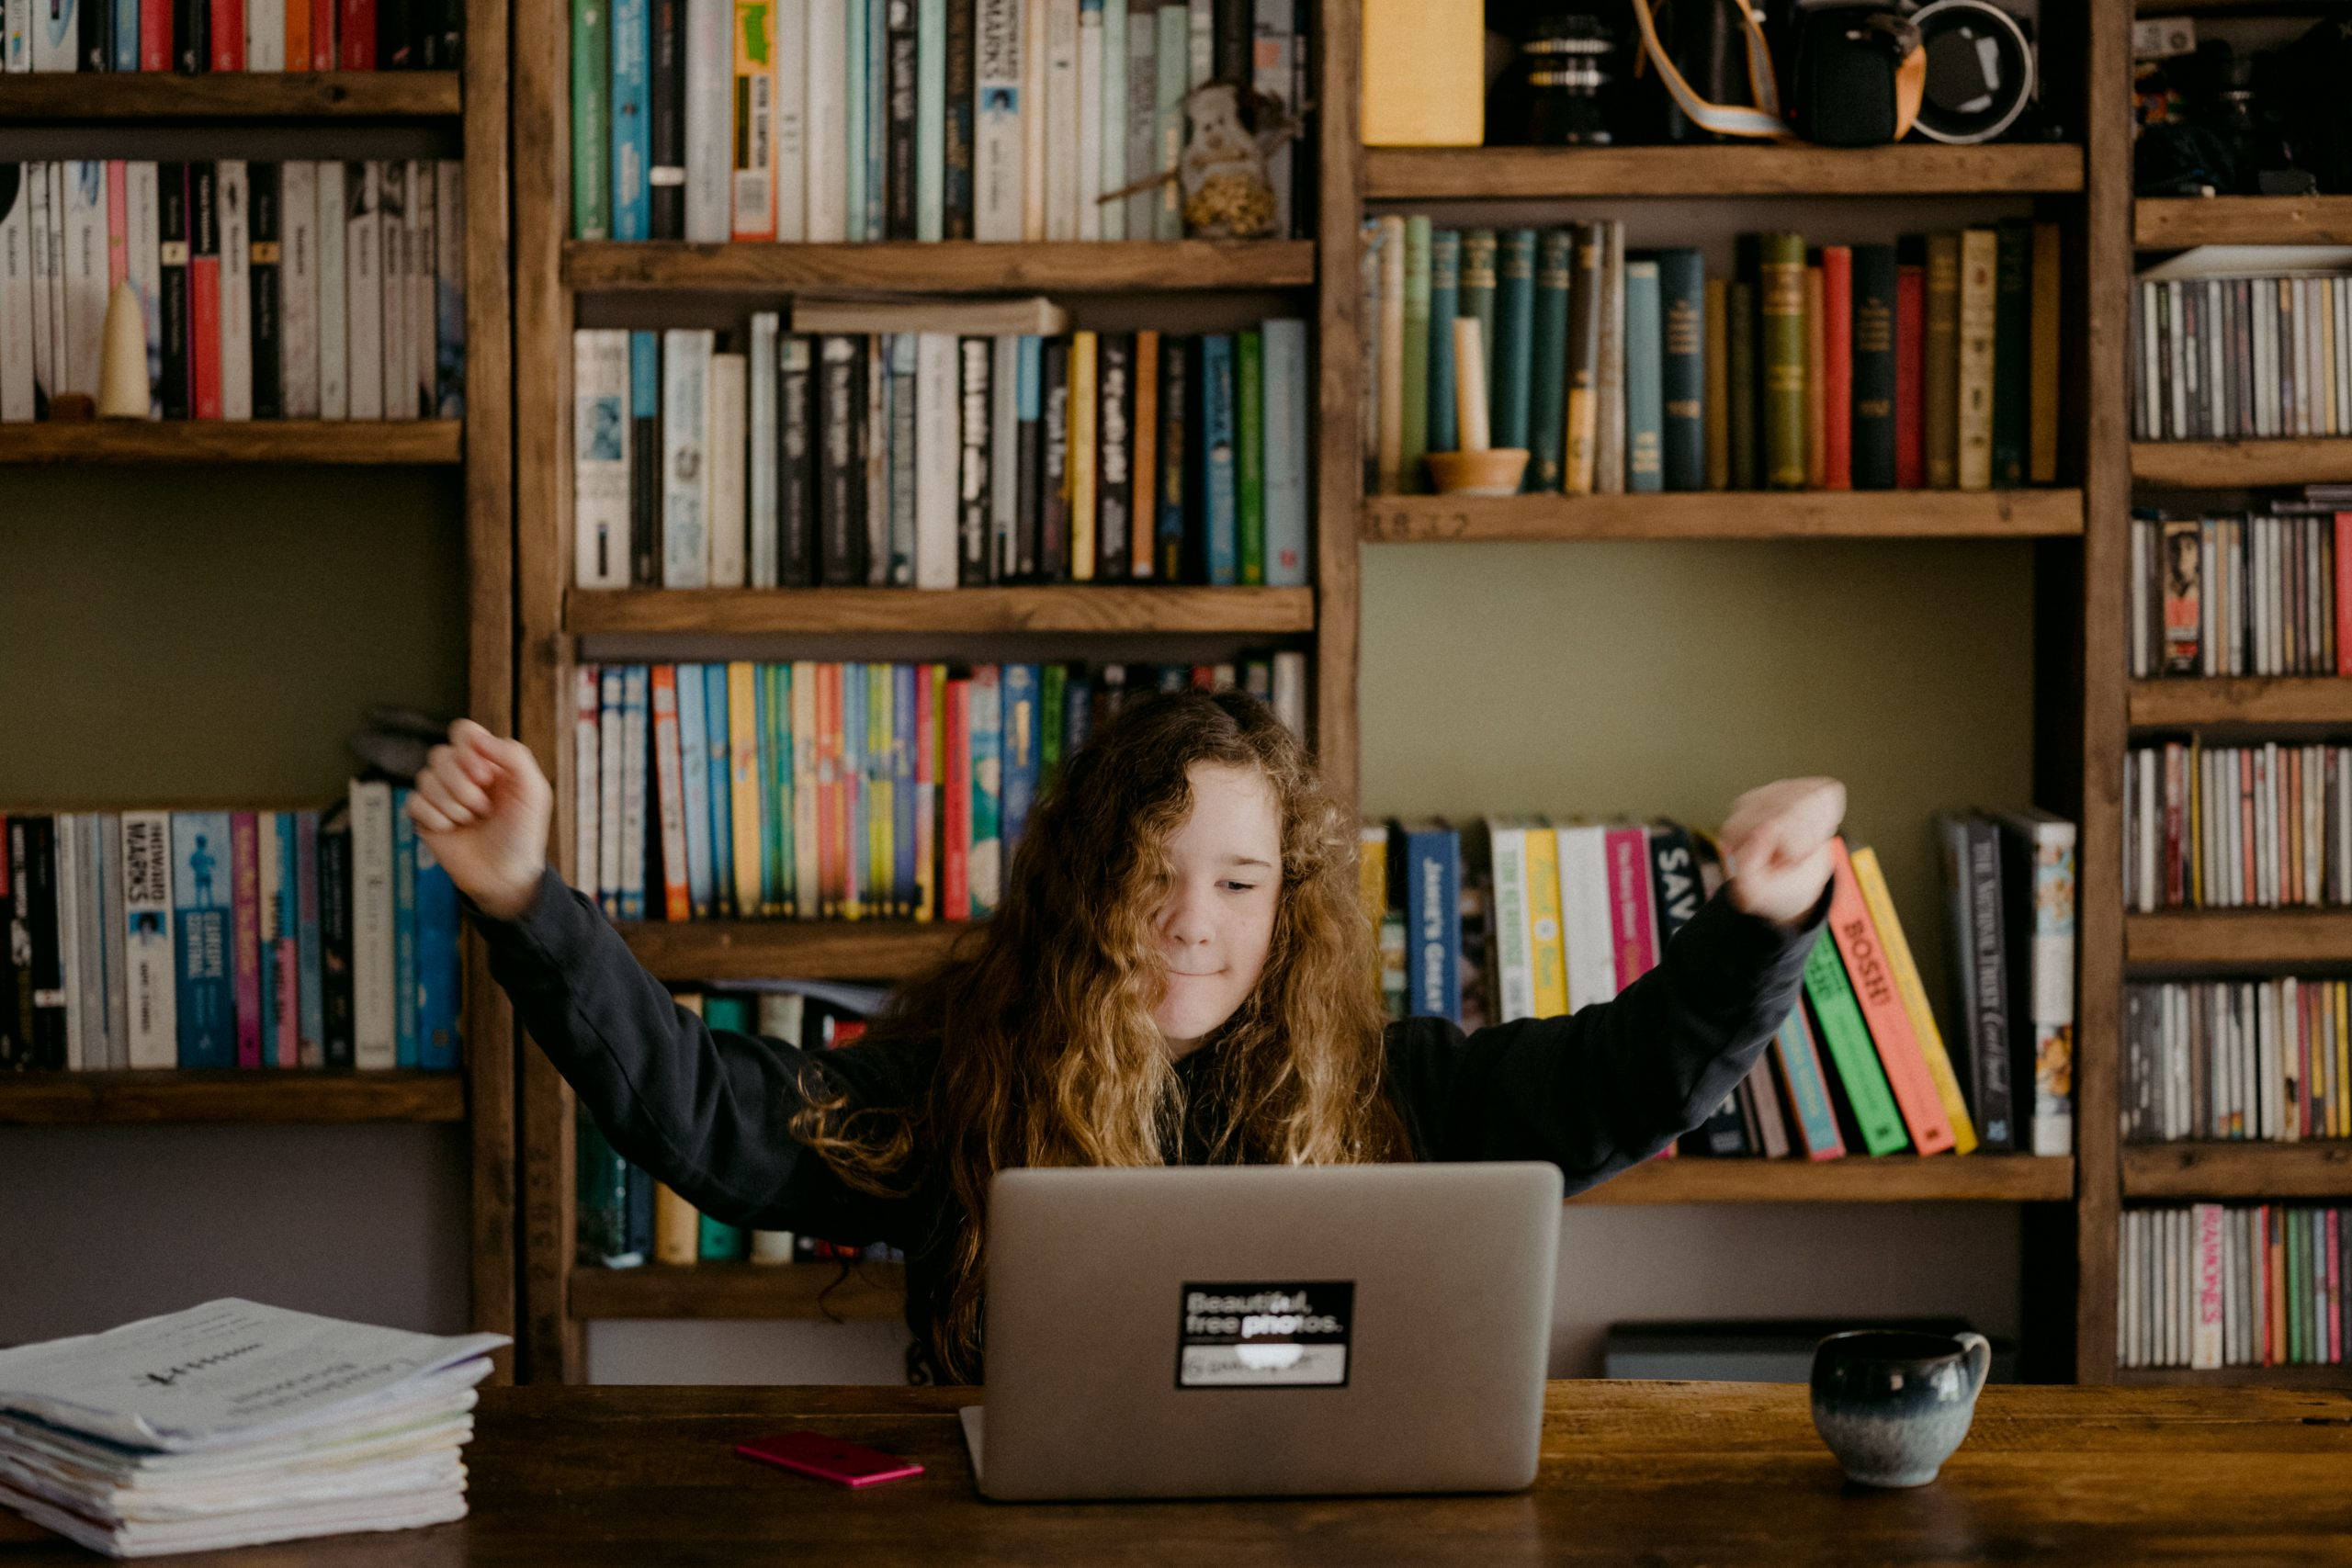 Image shows a child with long brown curly hair, sat at a desk in front of a laptop, celebrating. Bookshelves are in the background.